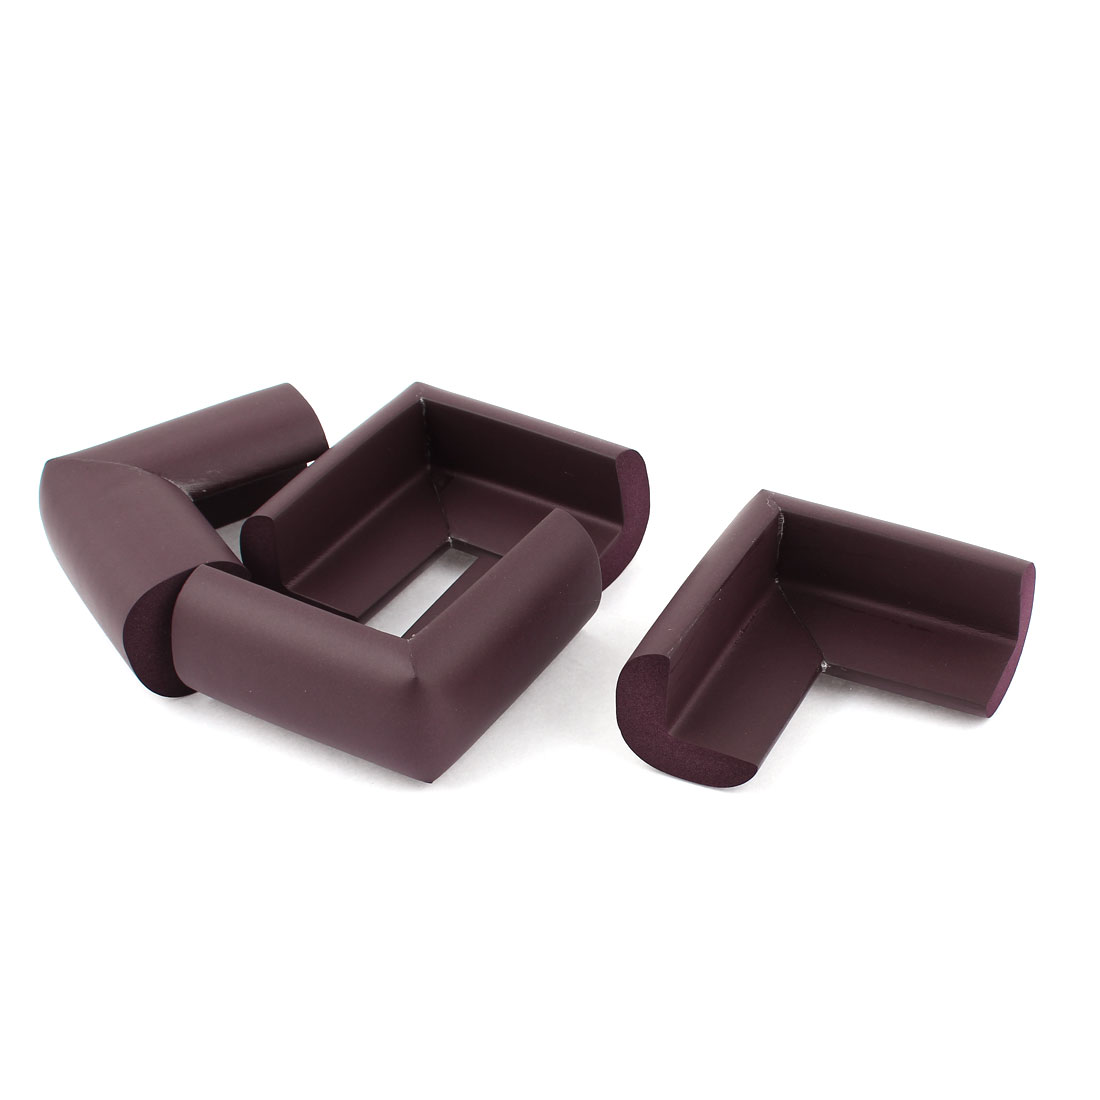 4 Pcs Chocolate Color Foam Table Desk Cupboard Corner Mat Cover Guard Protective Cushion